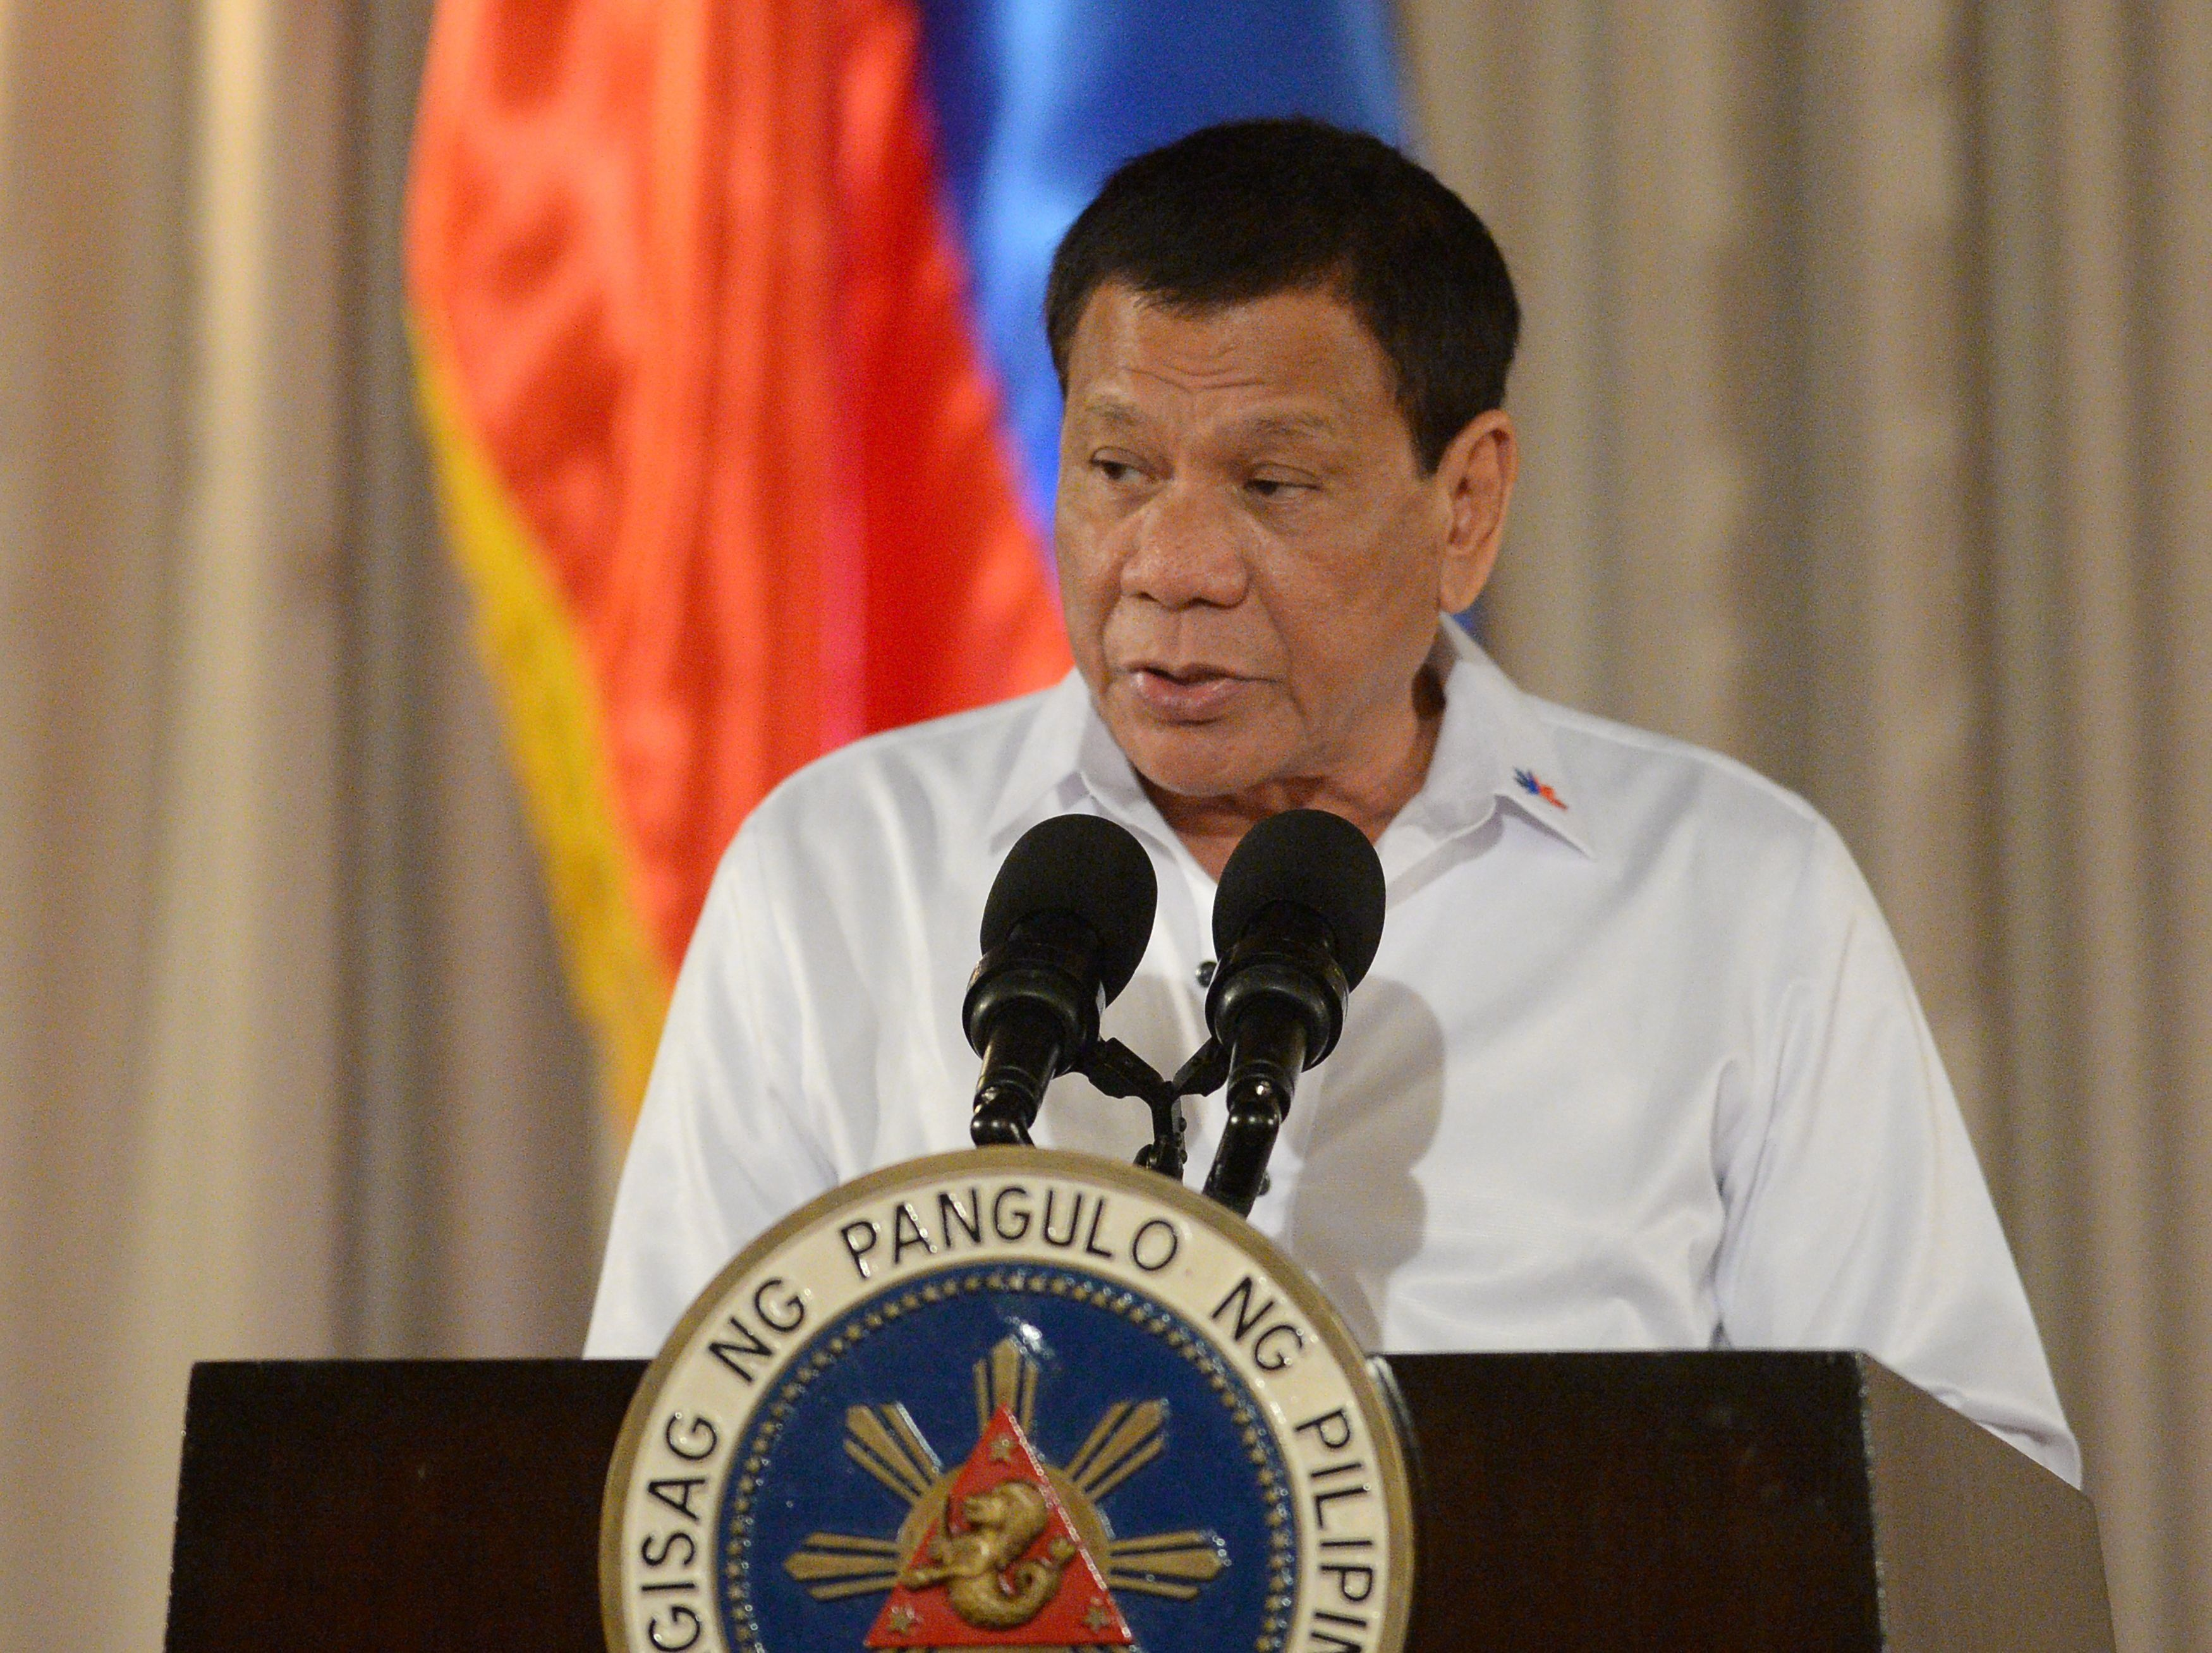 philippine president duterte suggests troops should shoot female rebels in vagina 3